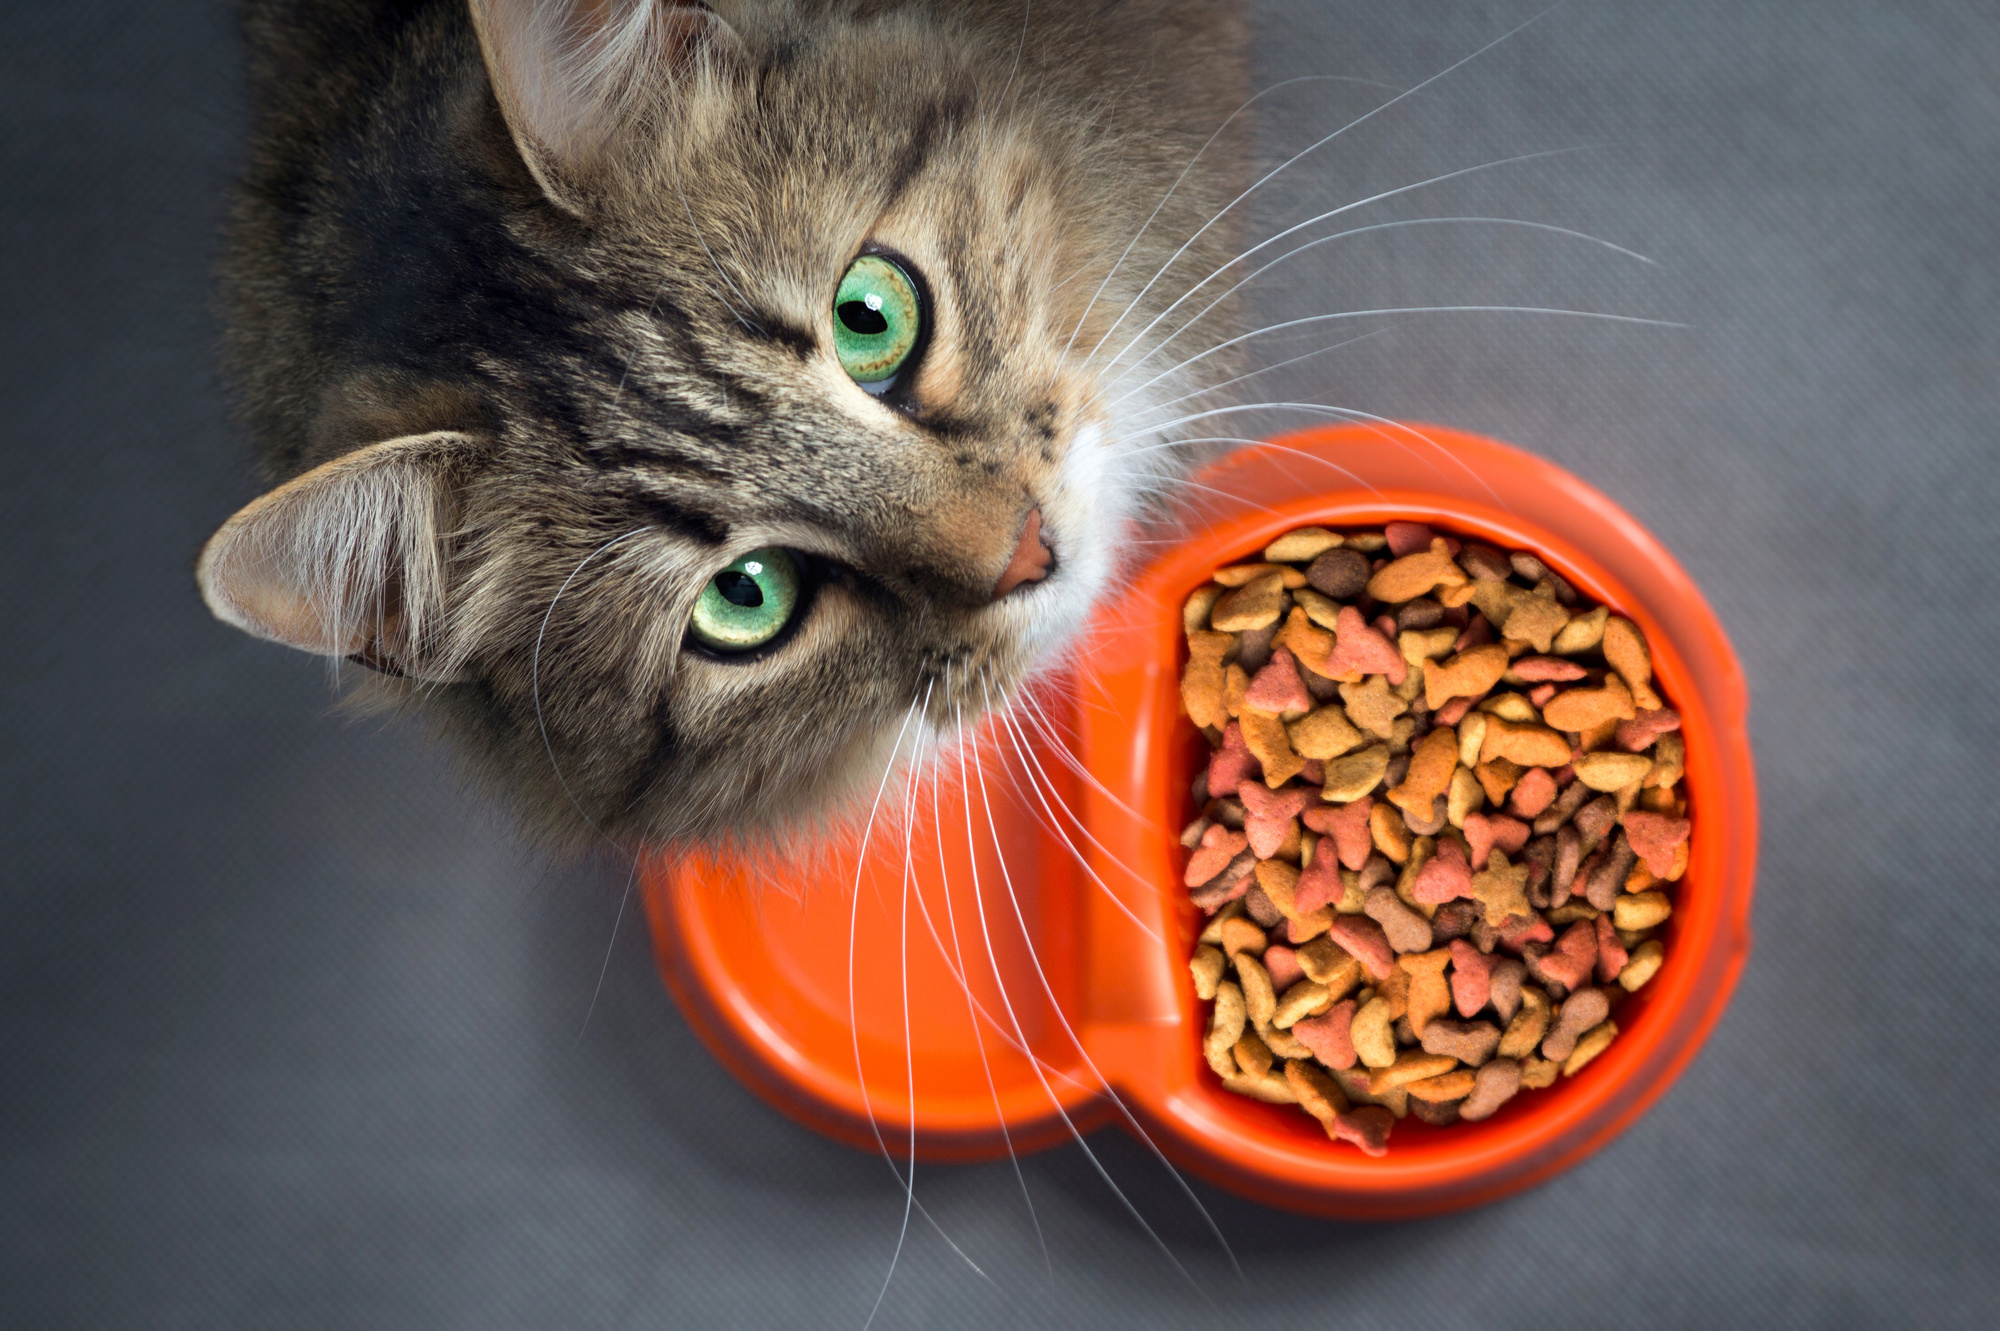 How Much Should You Feed Your Cat? A Guide on Cat Food Portions